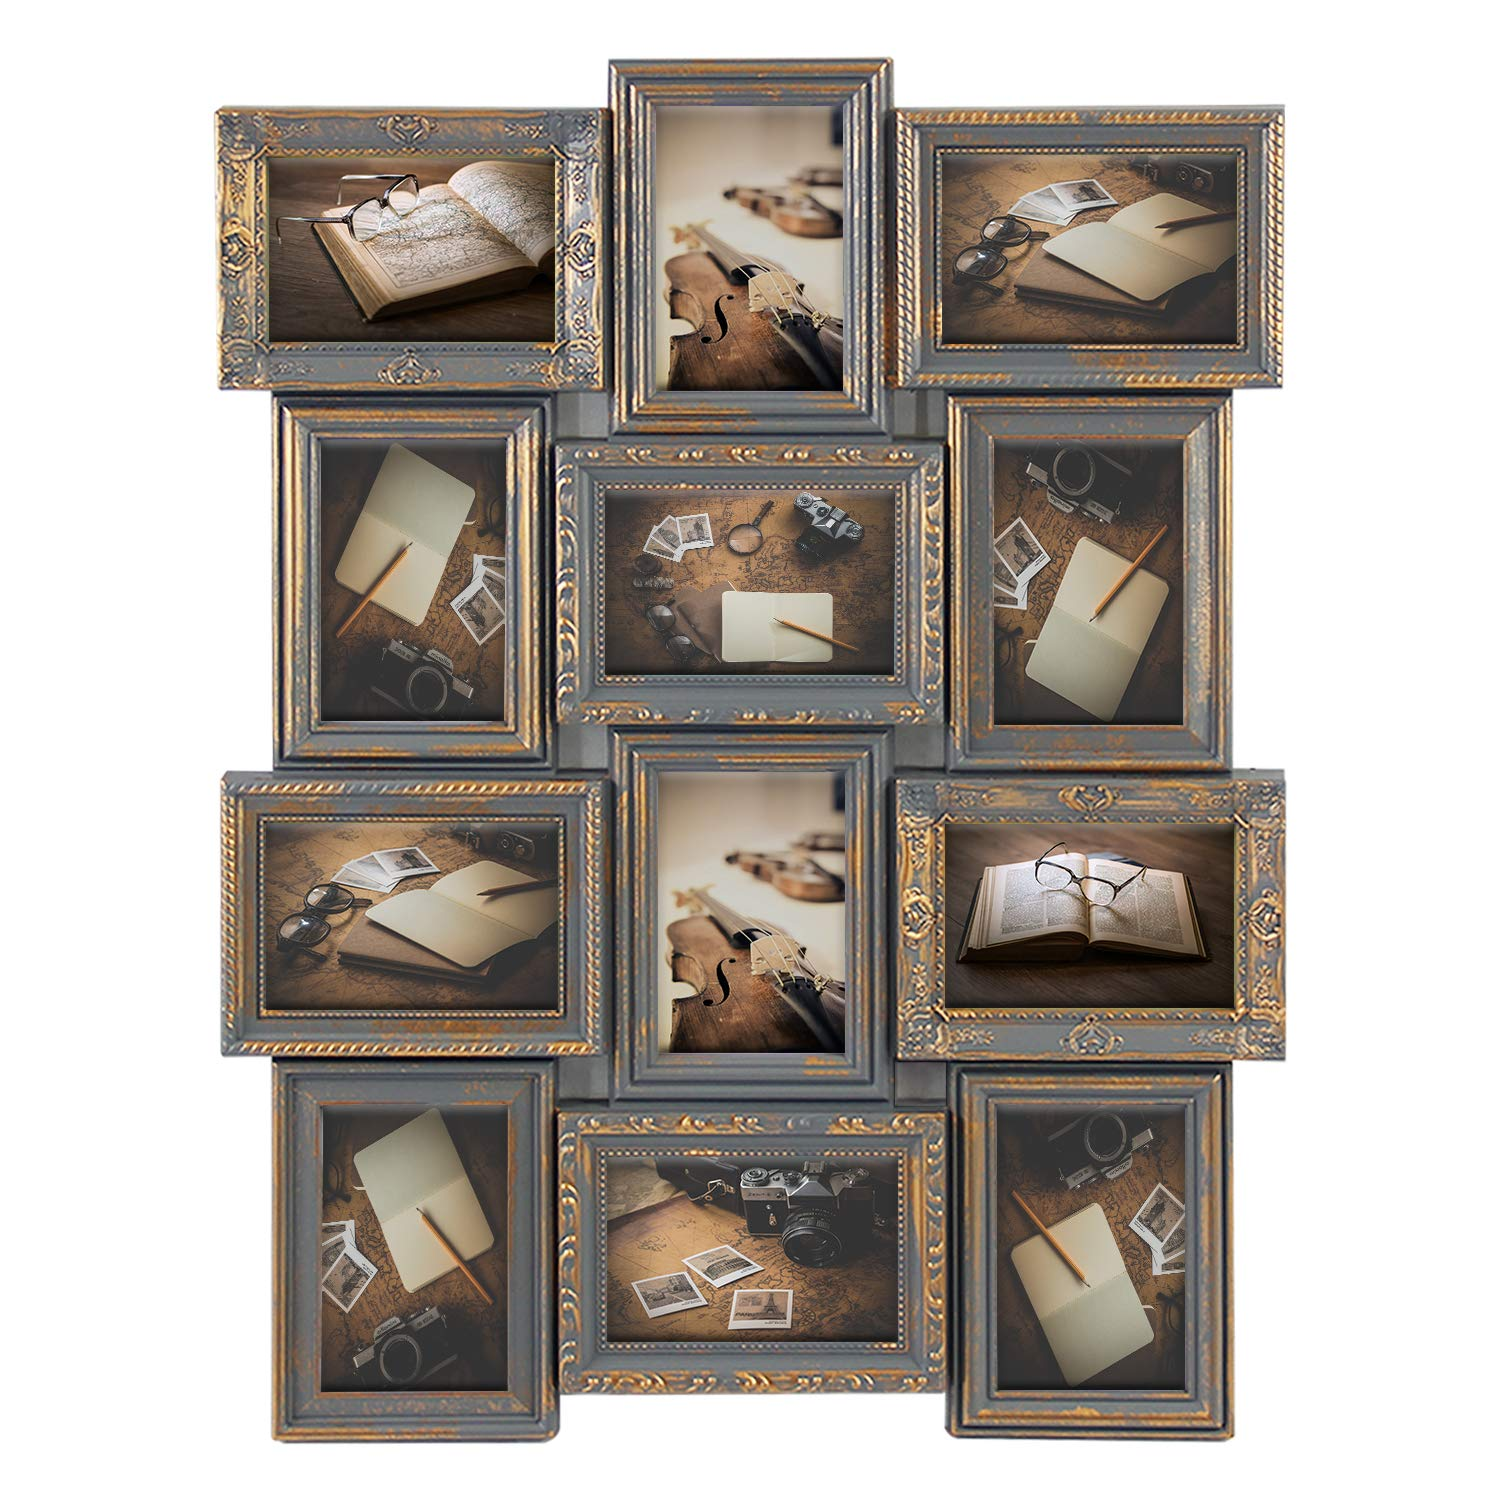 Jerry & Maggie - Photo Frame 23X18 Gray Gold Finish Curved PVC Picture Frame Selfie Gallery Collage Wall Hanging for 6x4 Photo - 12 Photo Sockets - Classic Loyalty Style - Wall Mounting Design by Jerry & Maggie